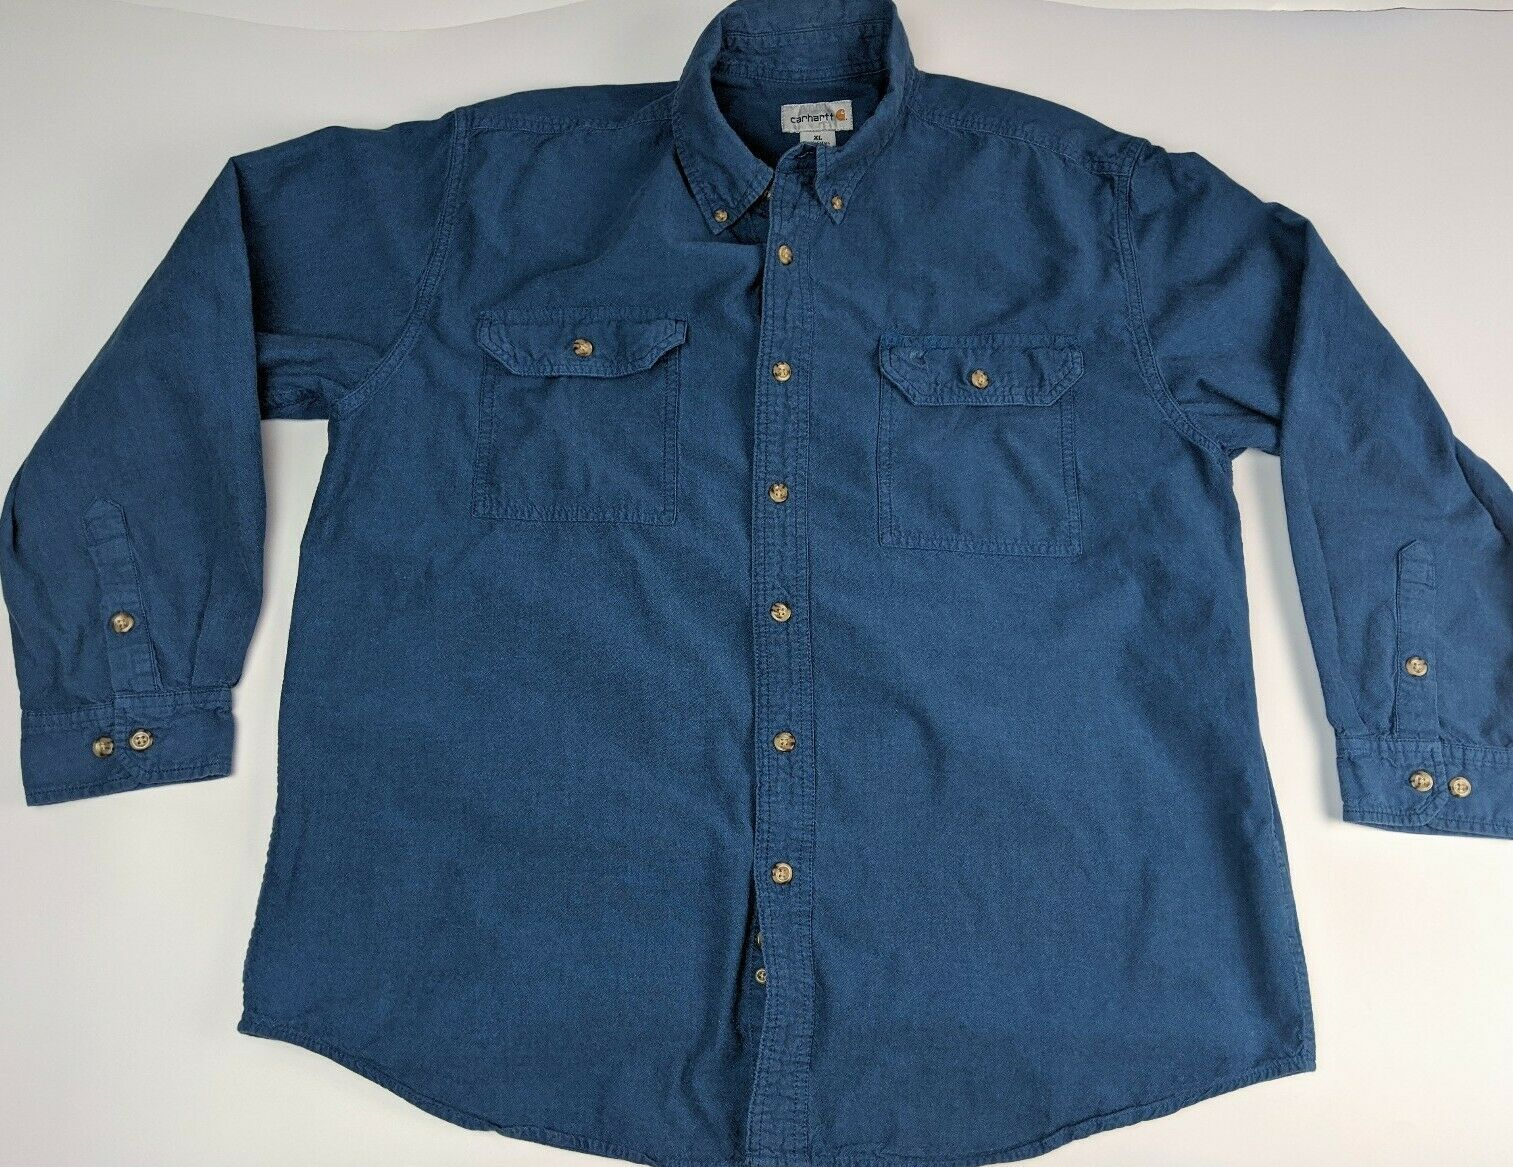 Carhartt Shirt Size Xl 100 Cotton Blue Button Down Long Sleeve Outdoor Men S In 2020 Carhartt Shirts Carhartt T Shirt Carhartt